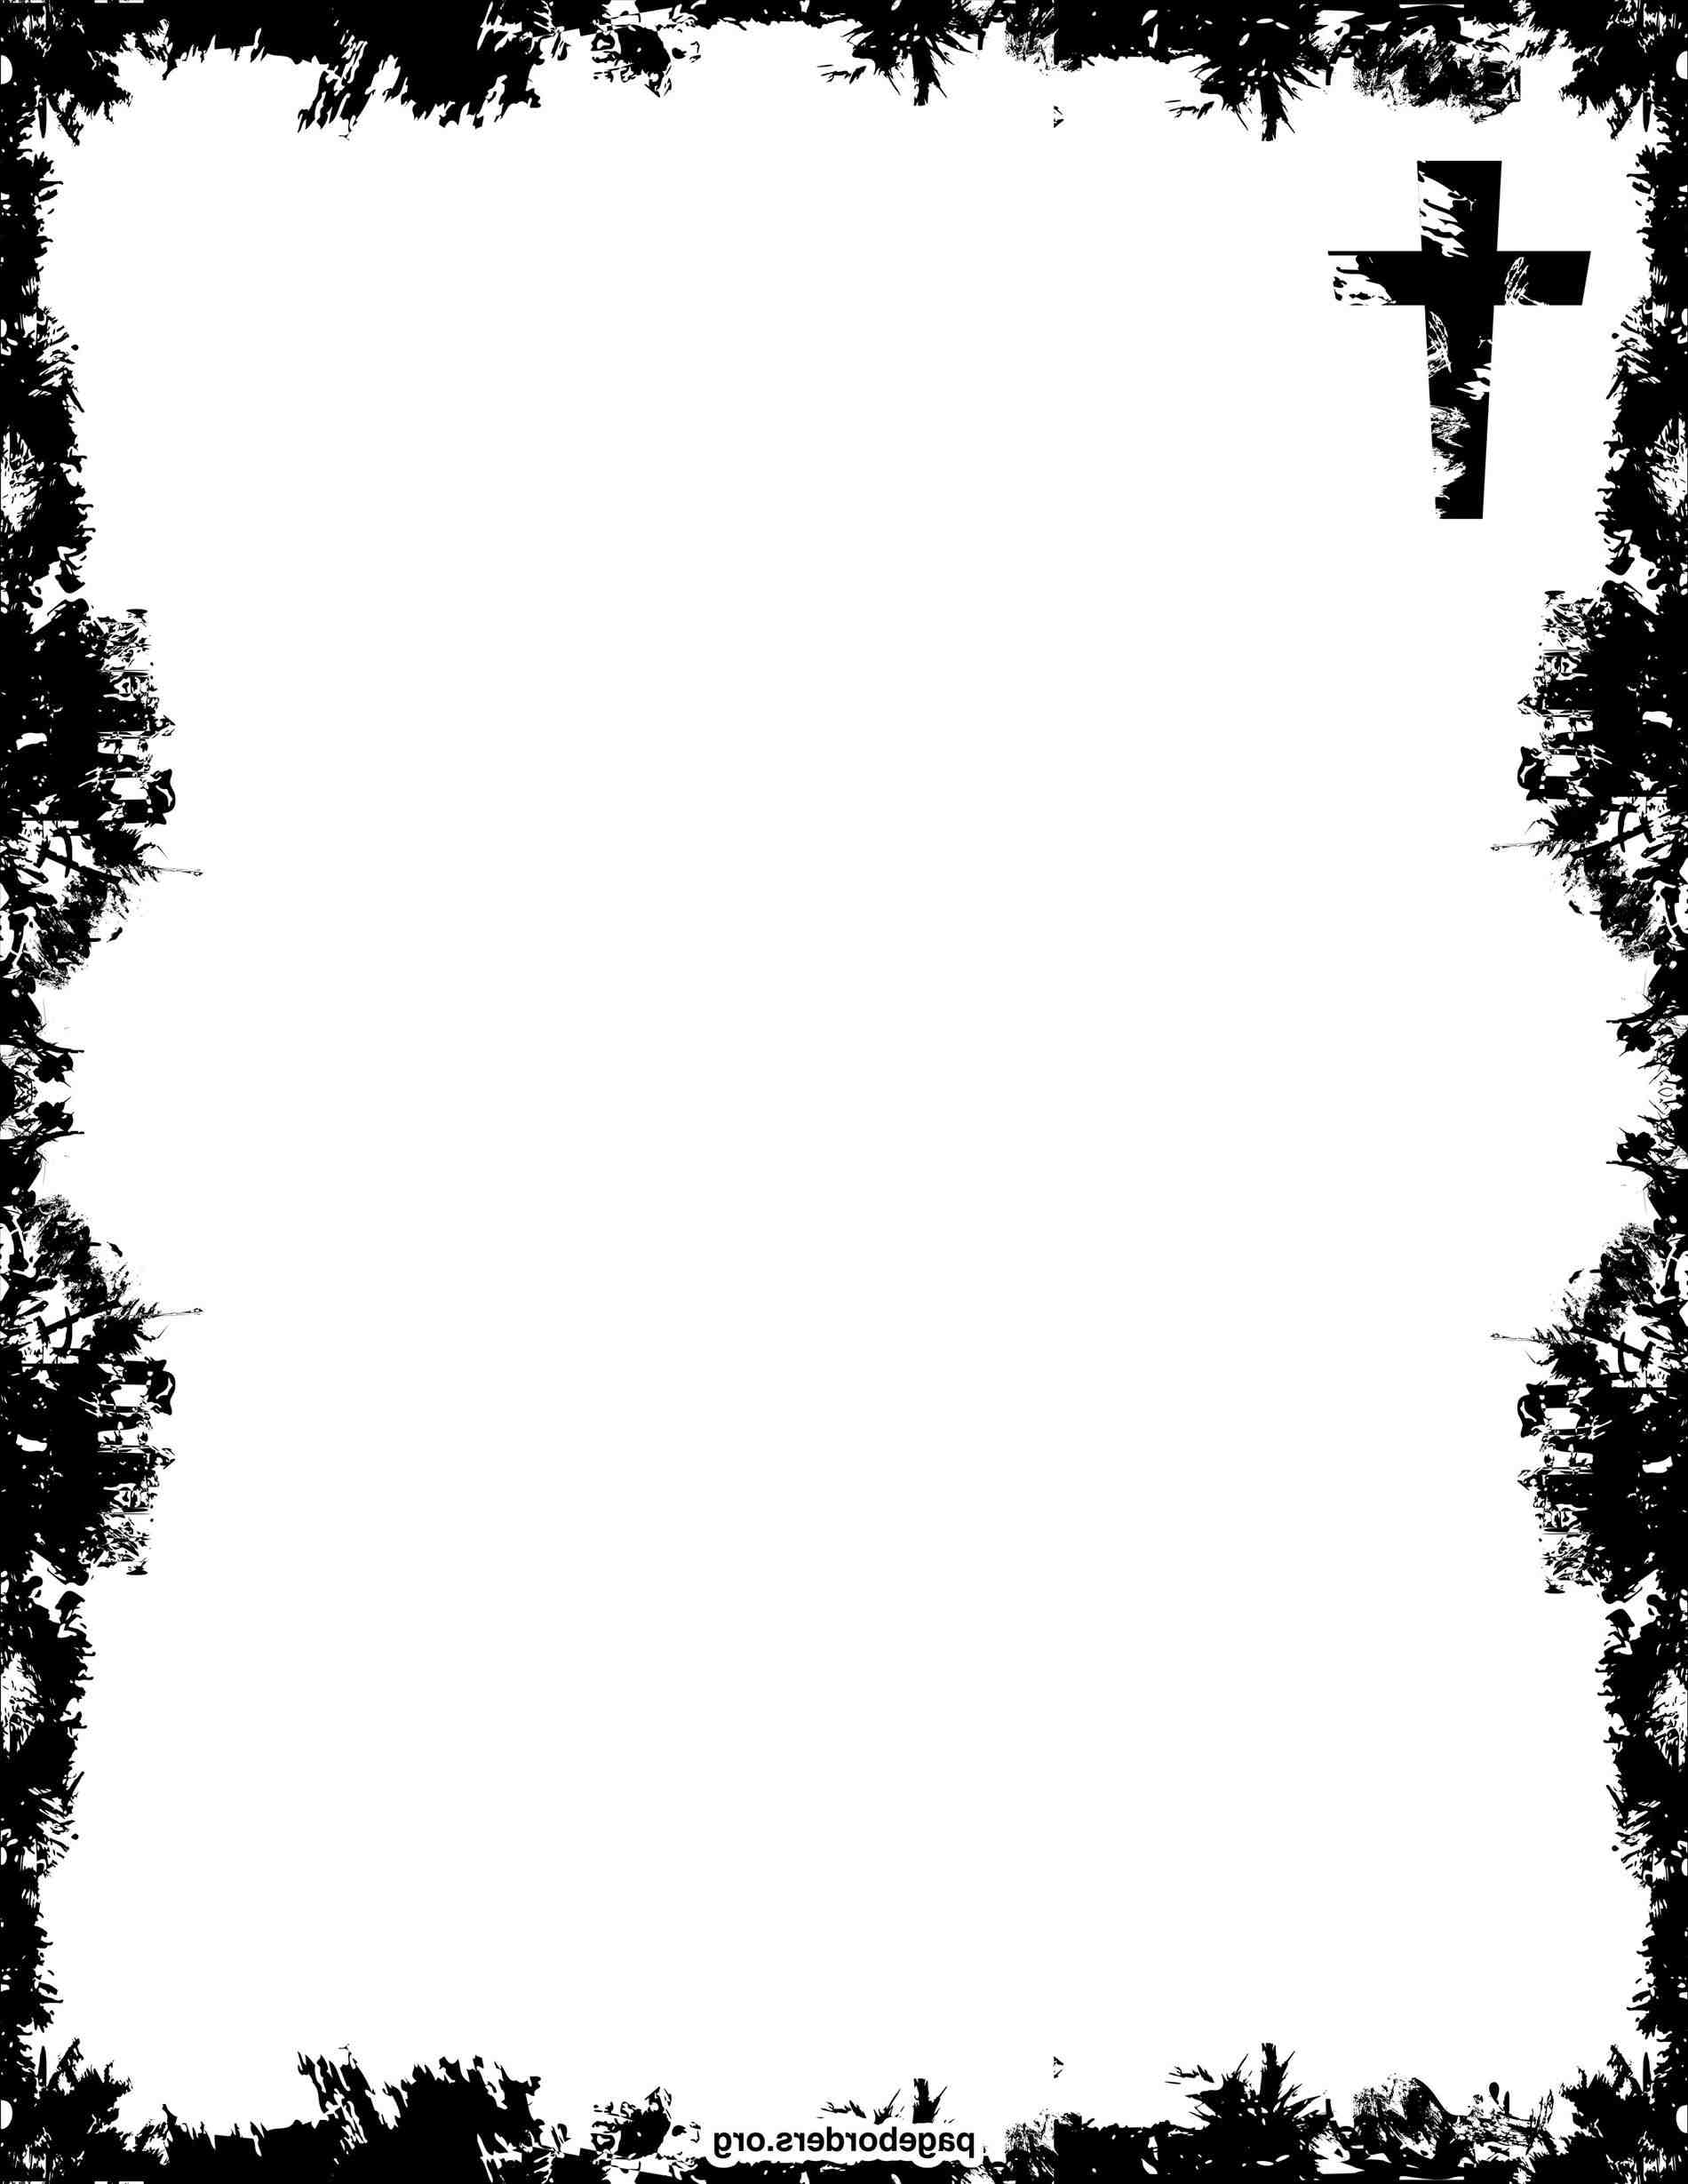 1900x2458 Black And White Christmas Clipart Borders Cheminee.website